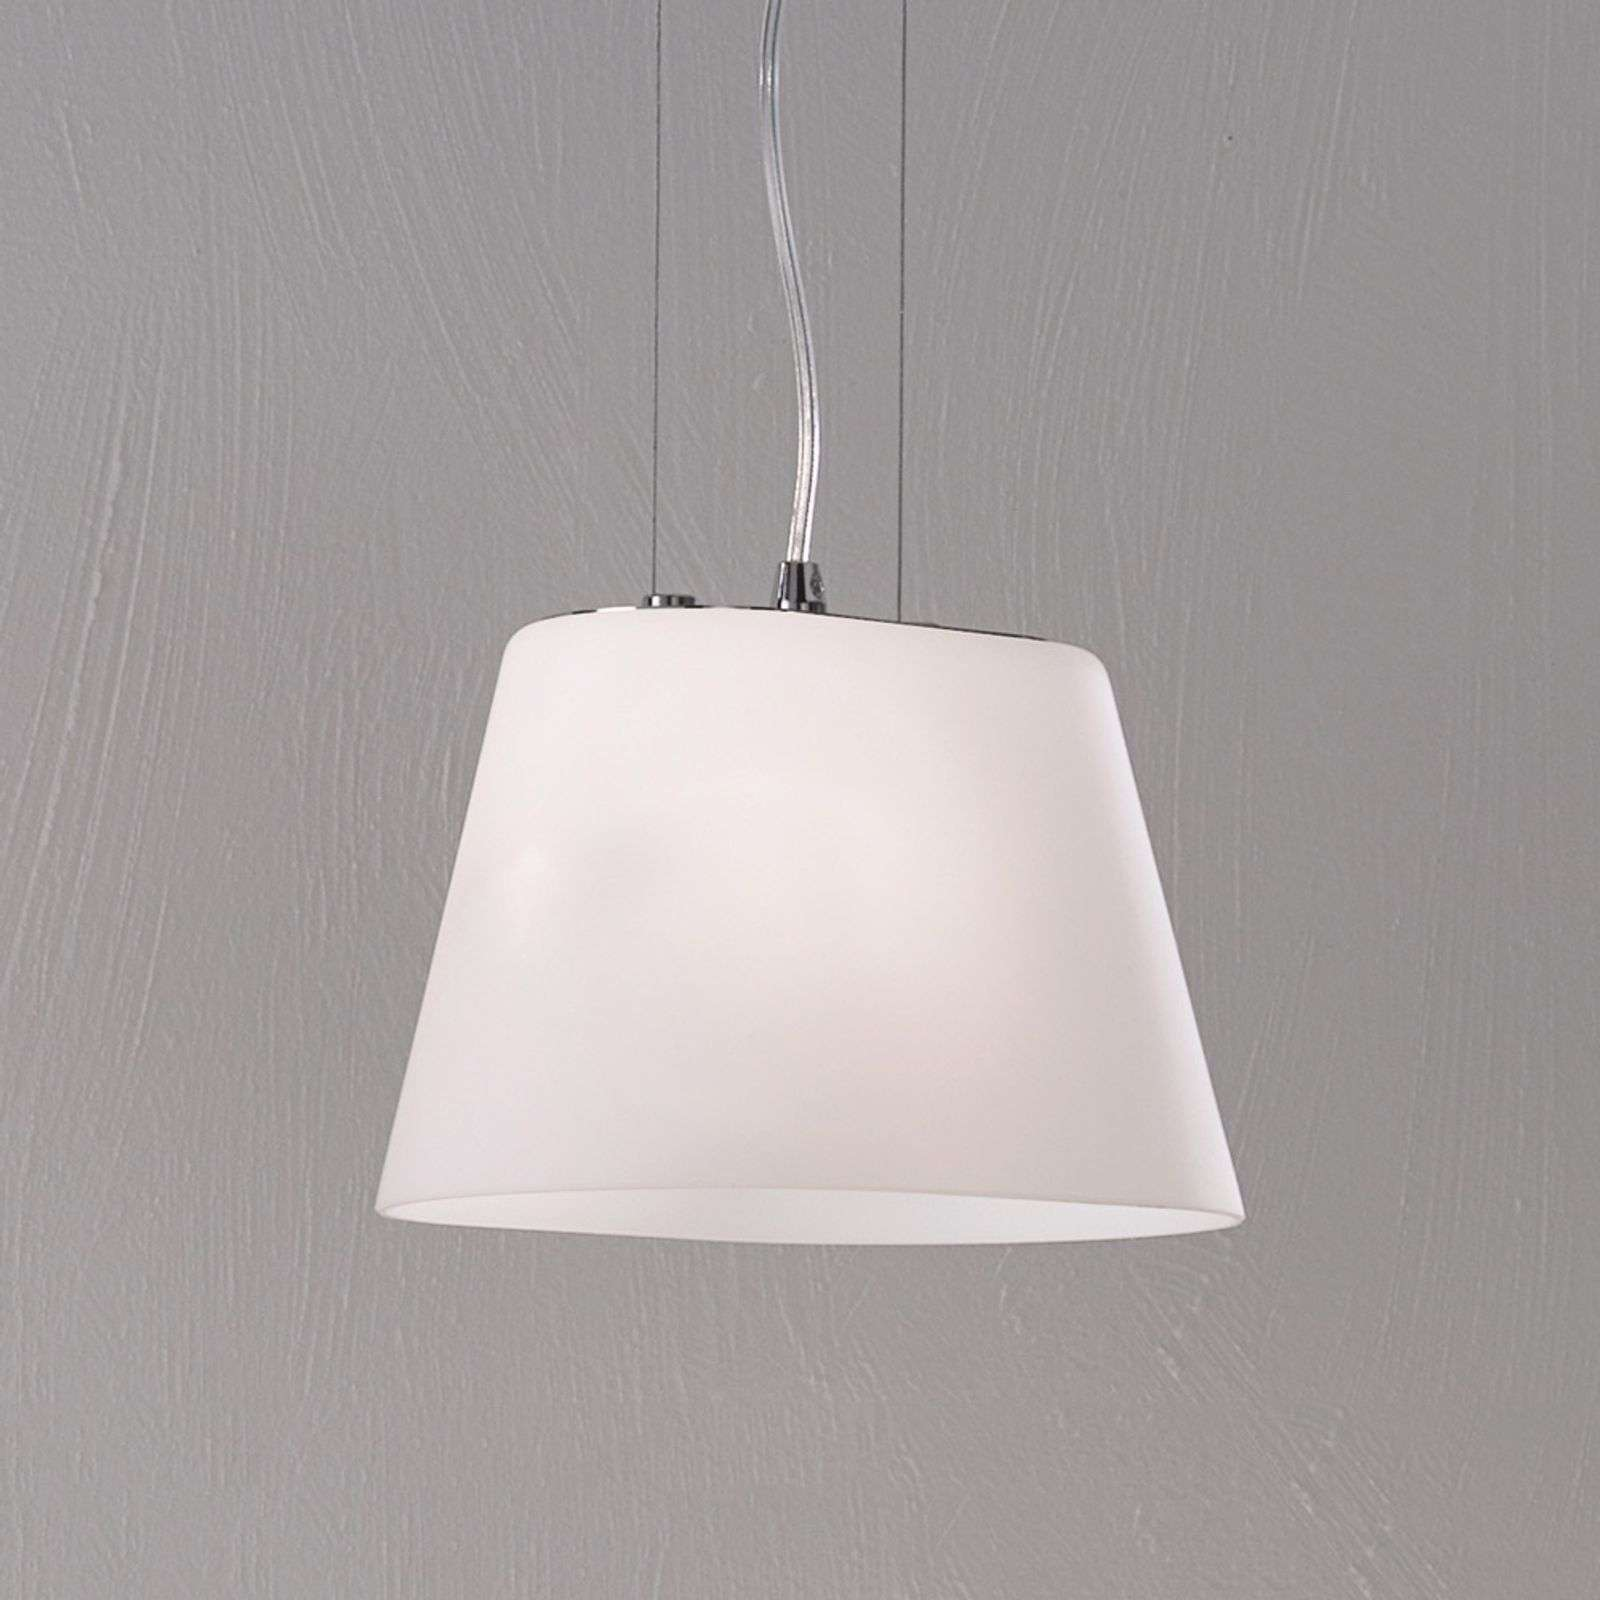 Suspension moderne Ramea